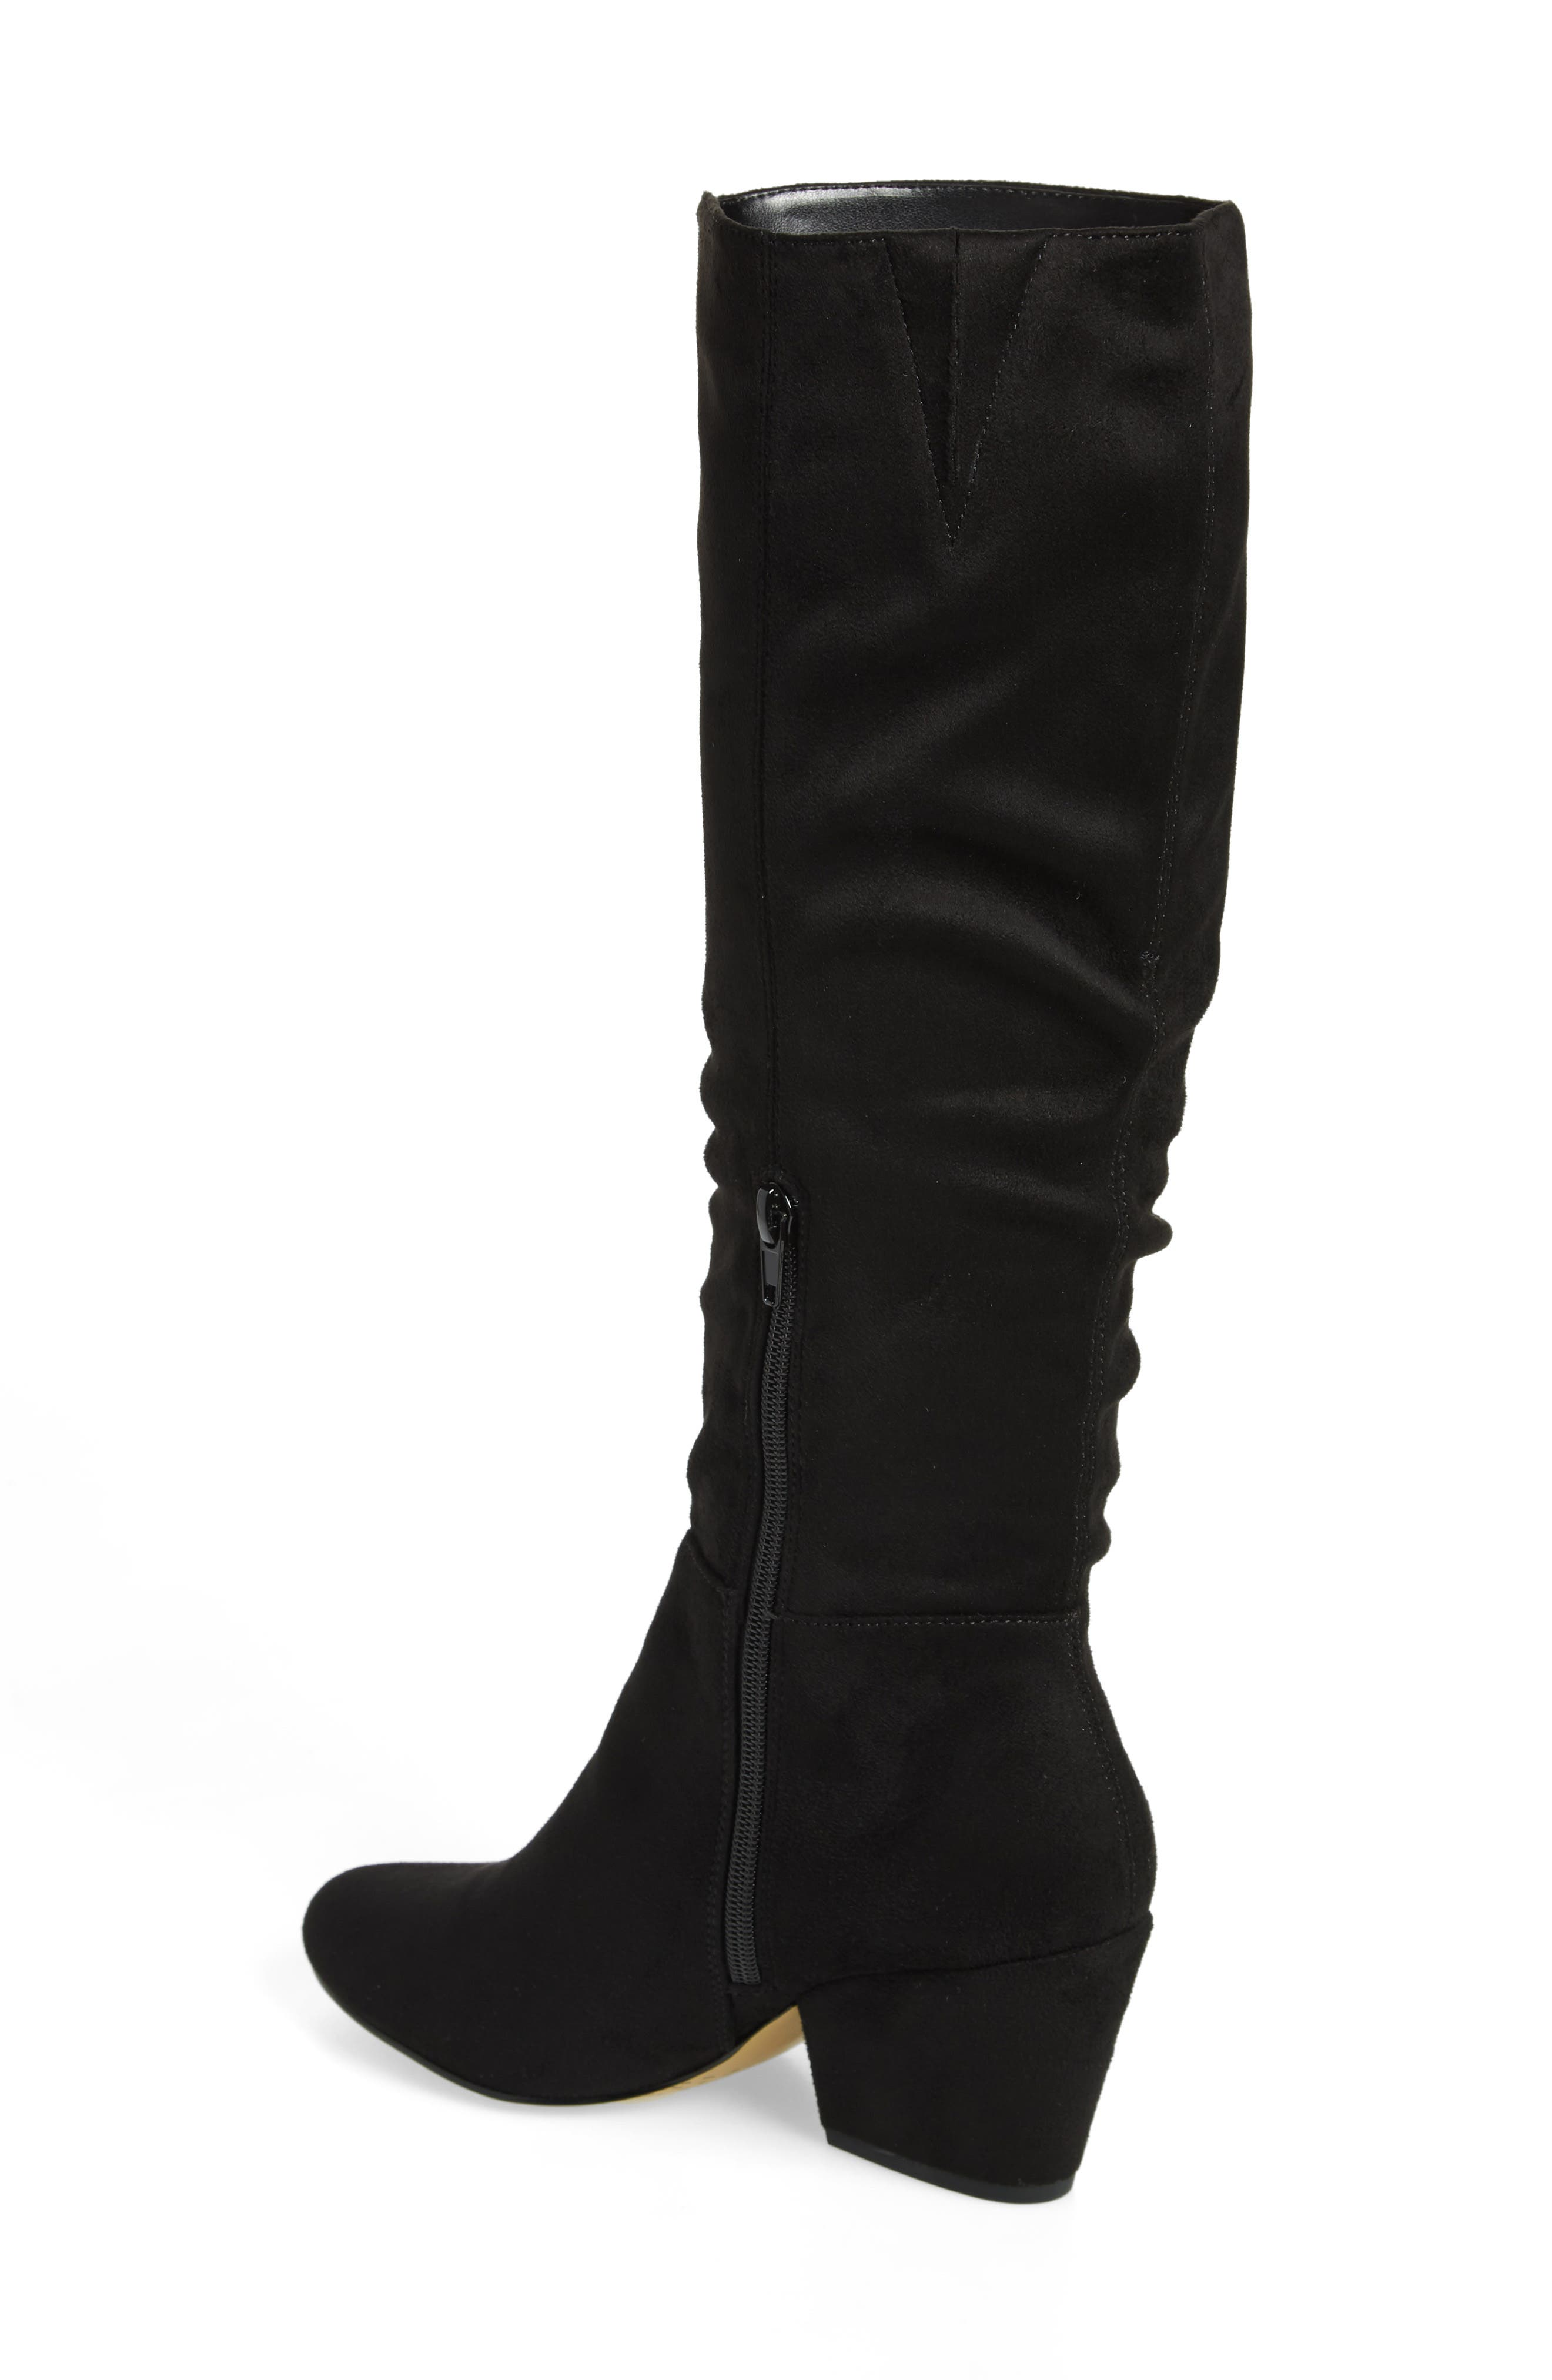 BELLA VITA, Karen II Knee High Slouch Boot, Alternate thumbnail 2, color, 018